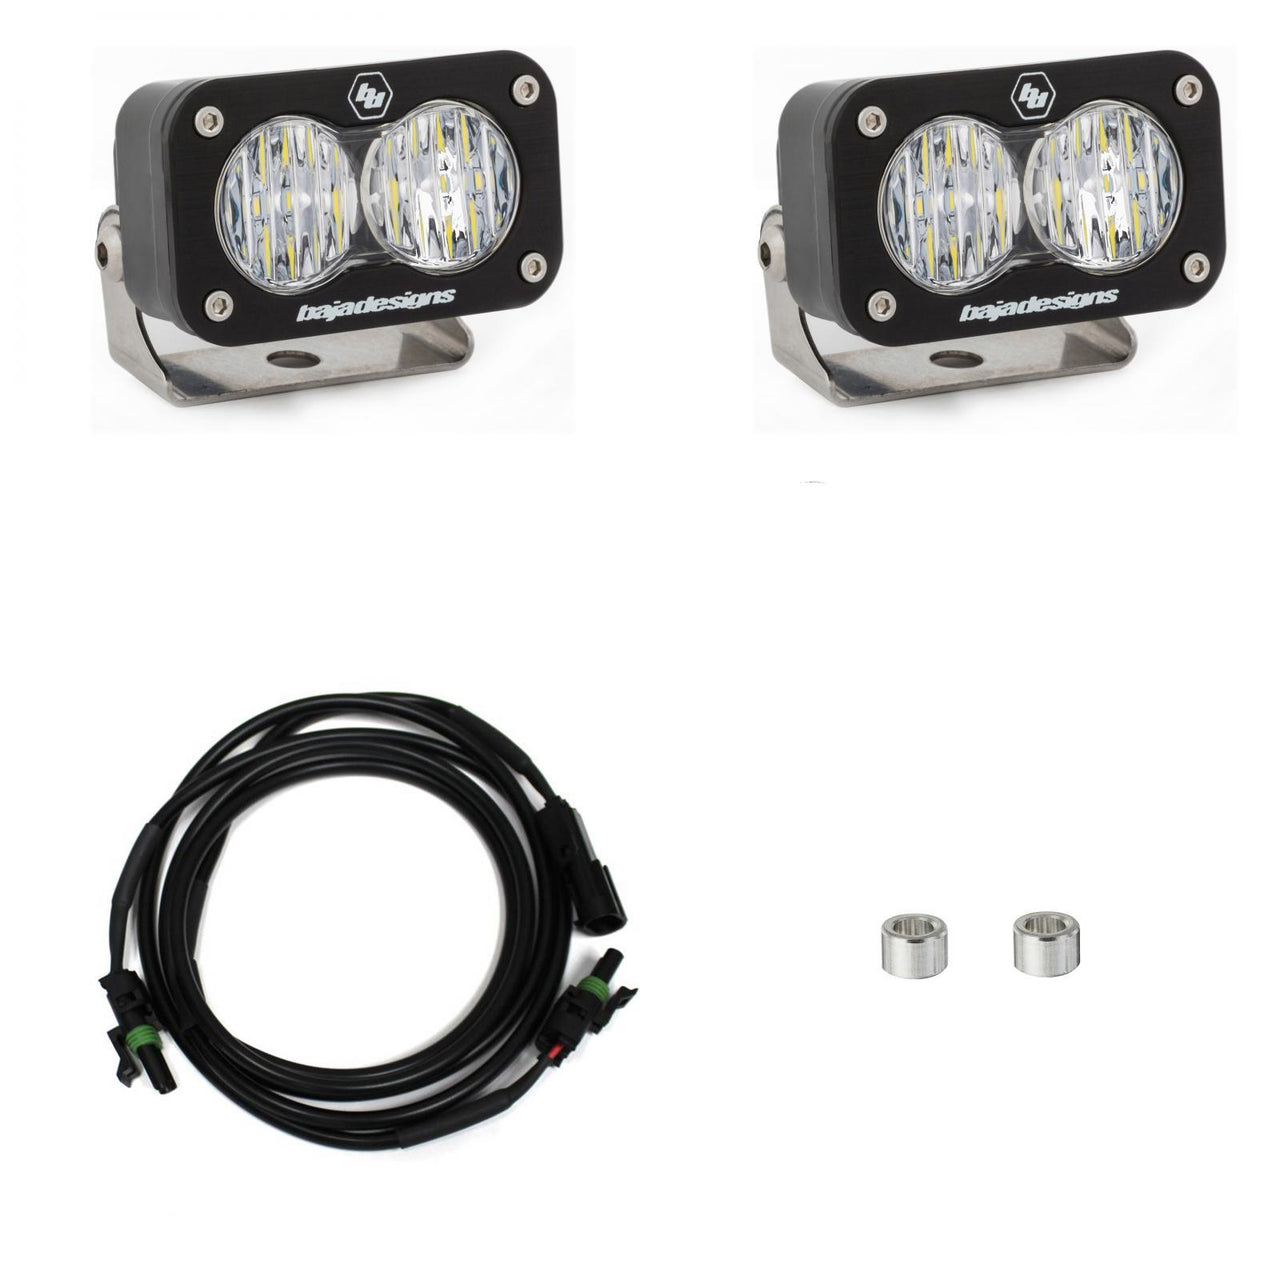 Raptor Reverse Light Kit 2017 Raptor S2 Series Baja Designs